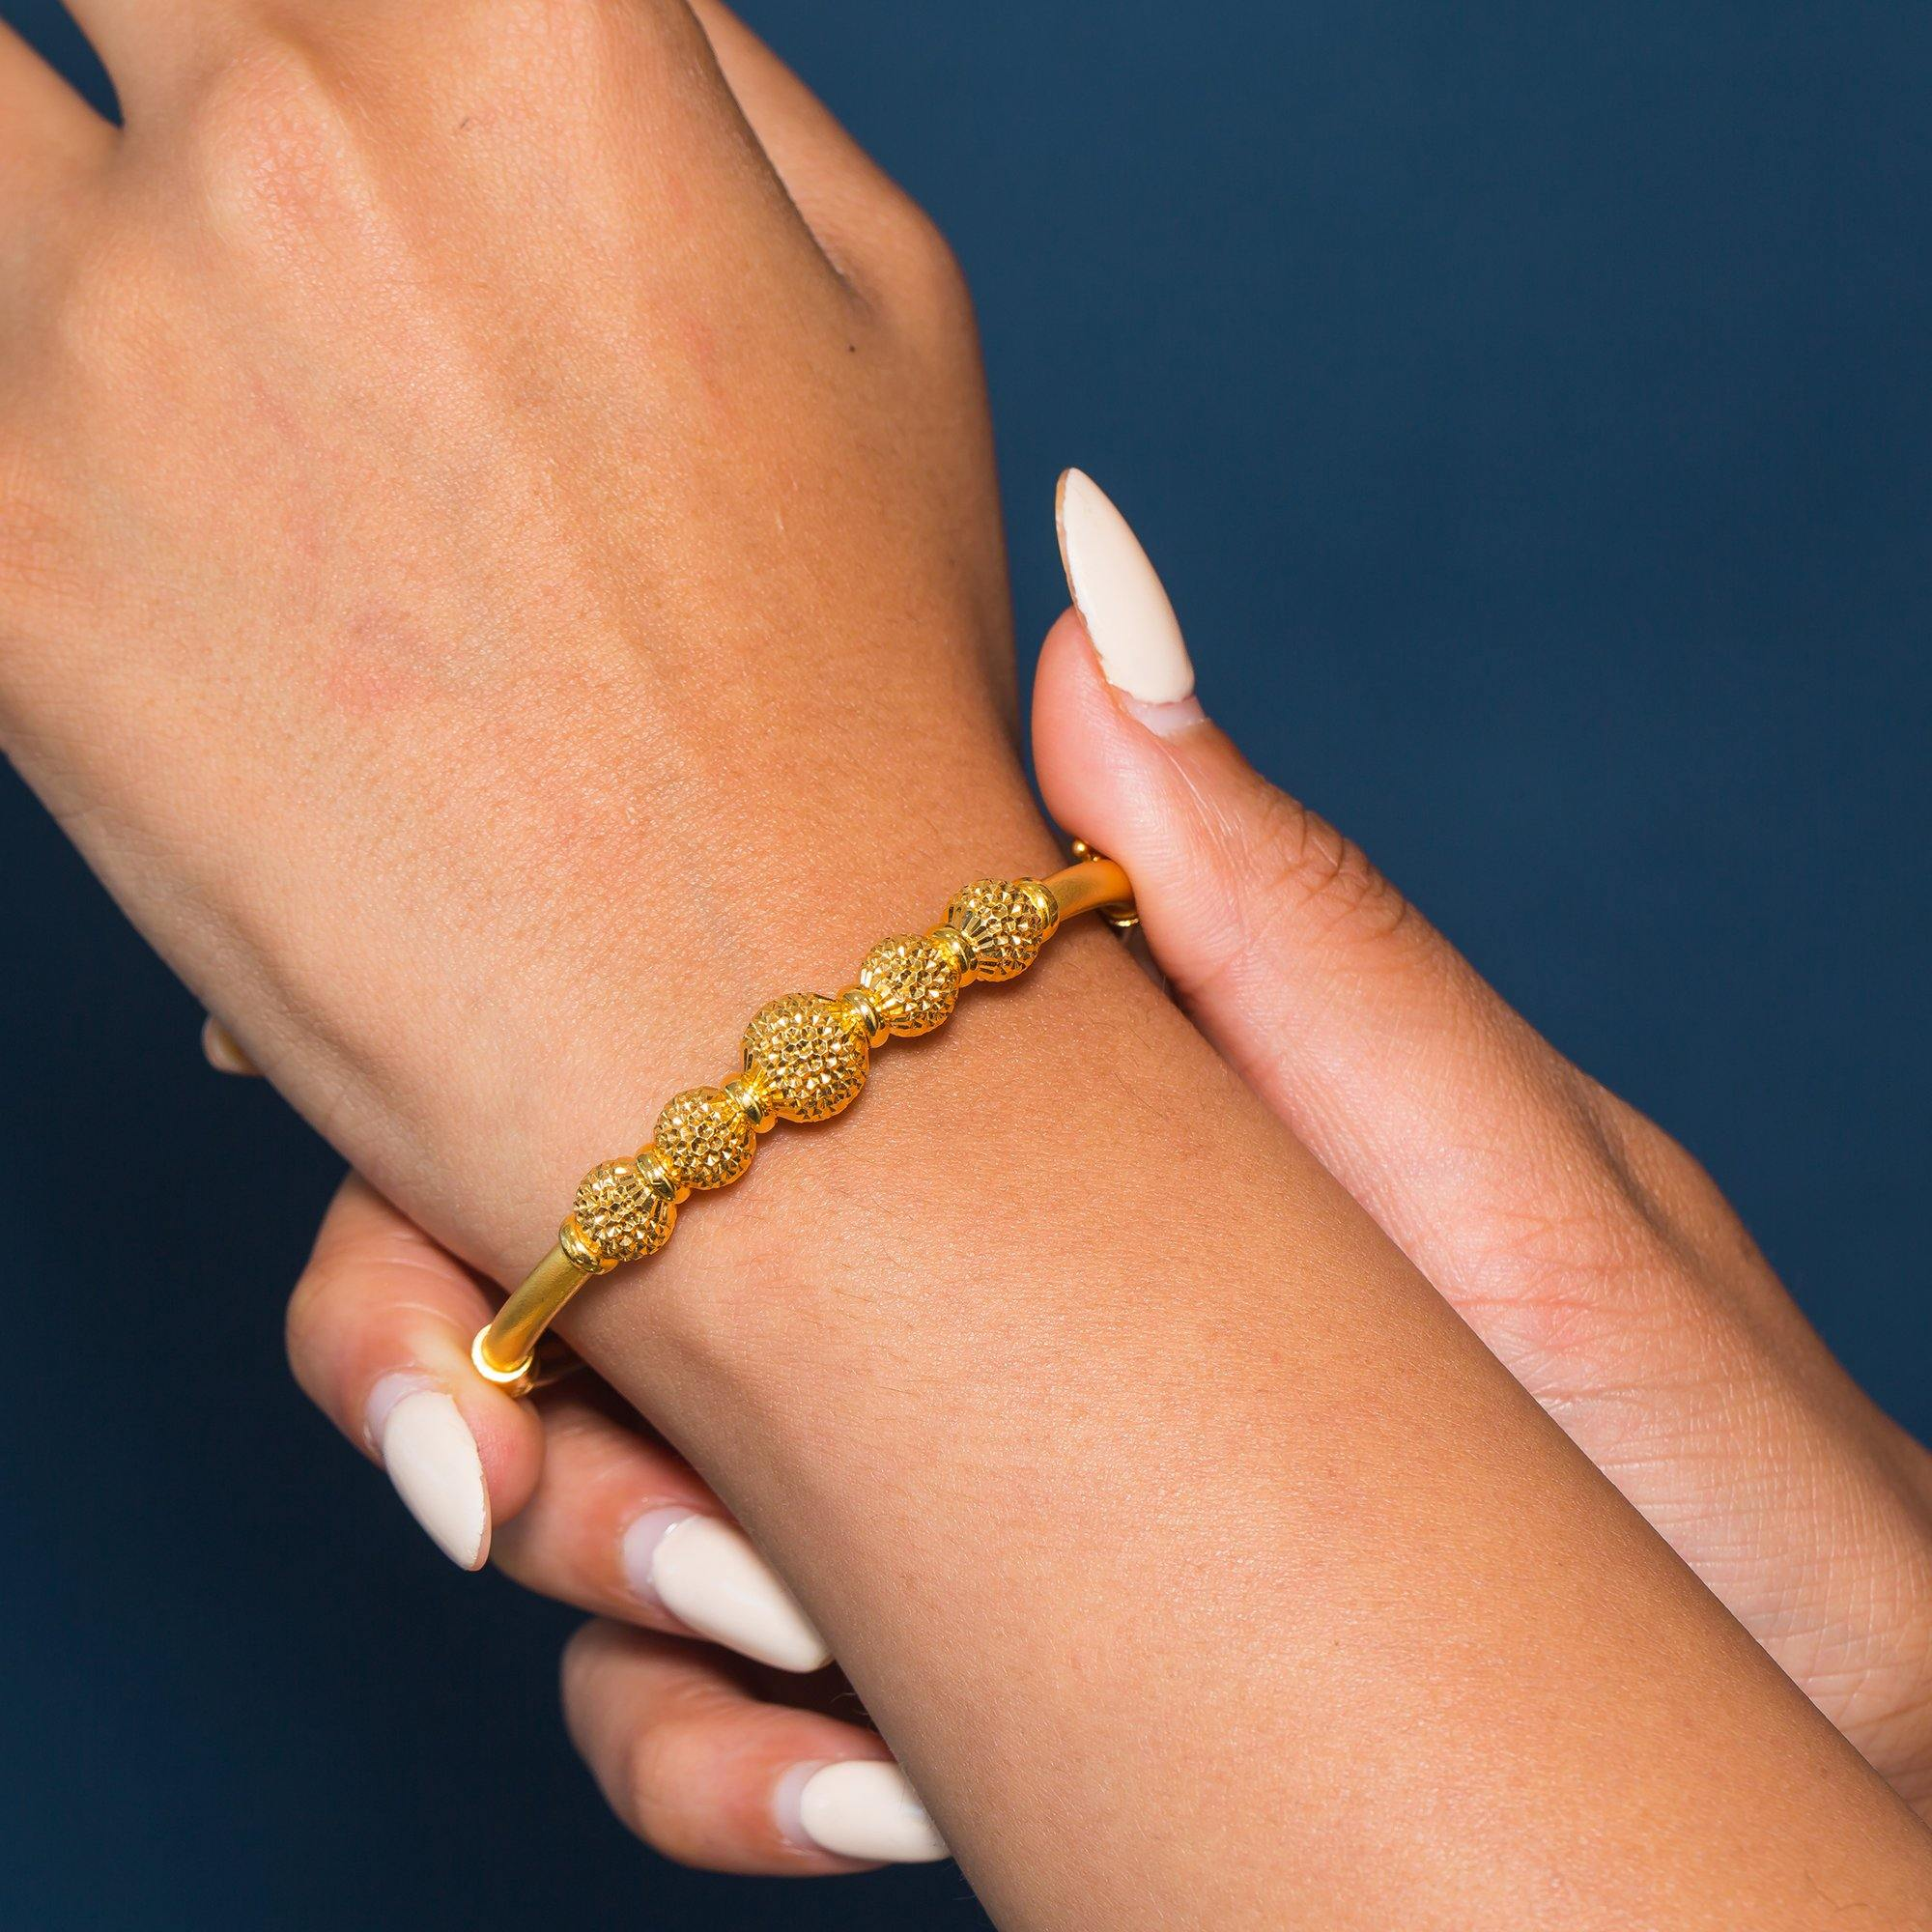 22K Yellow Gold Bangle W/ 5 Accent Dimpled Balls